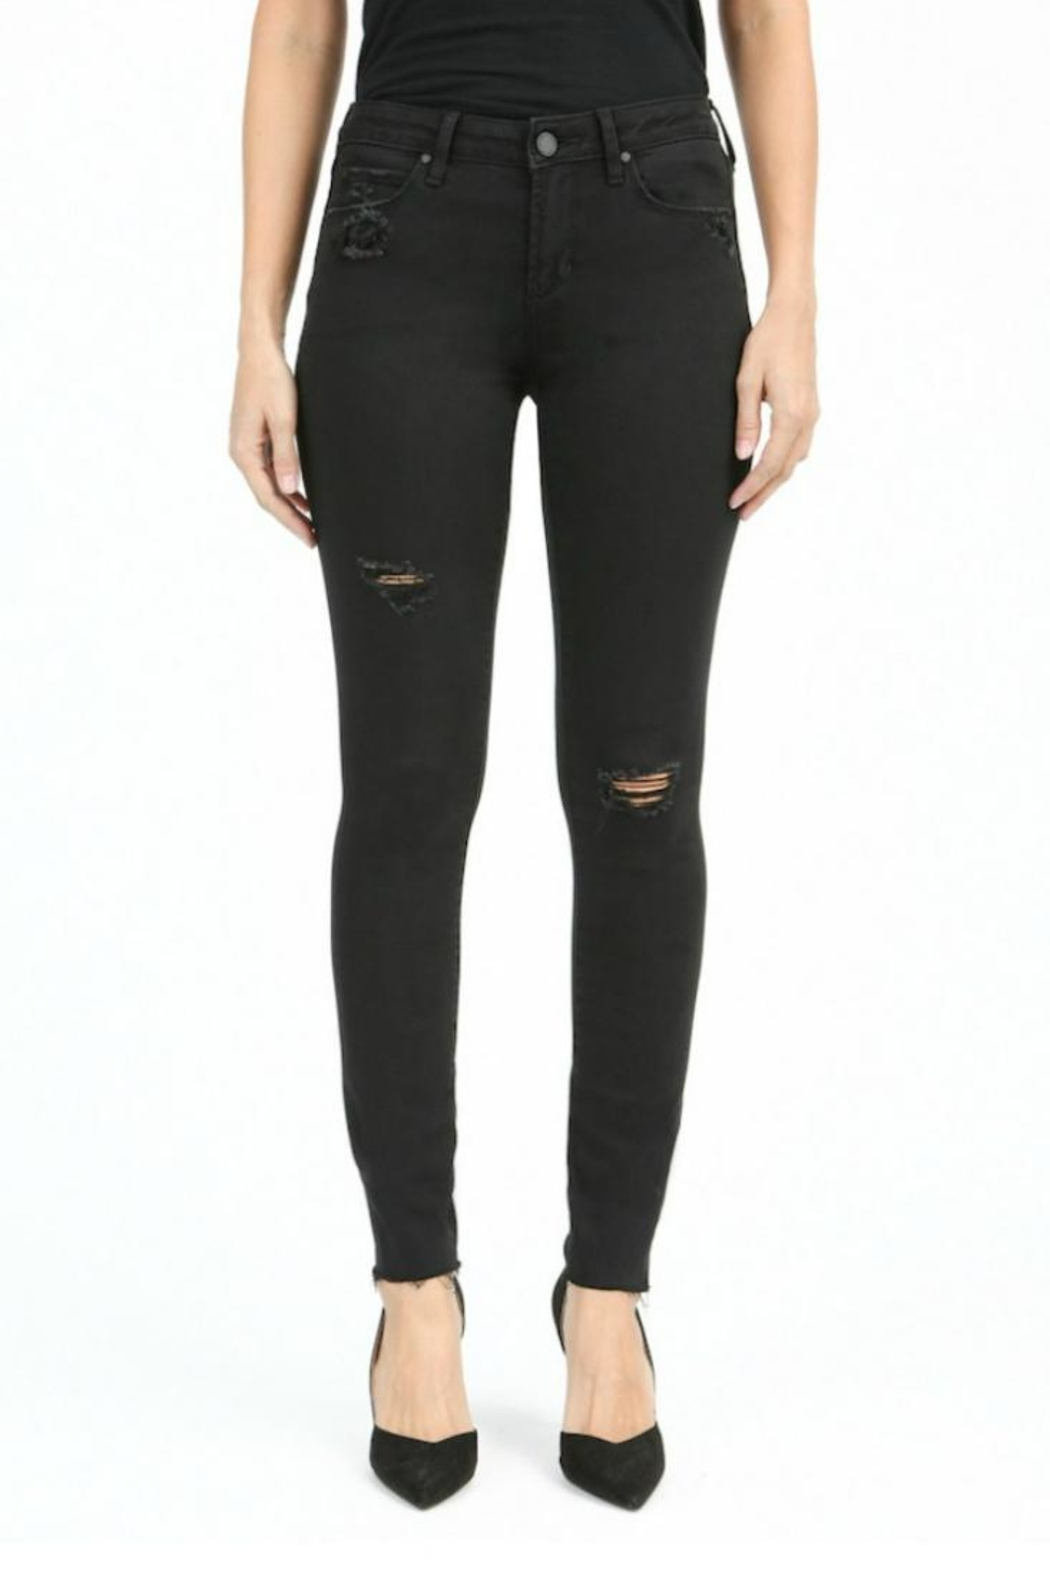 Articles of Society Black Distressed Skinnies - Main Image